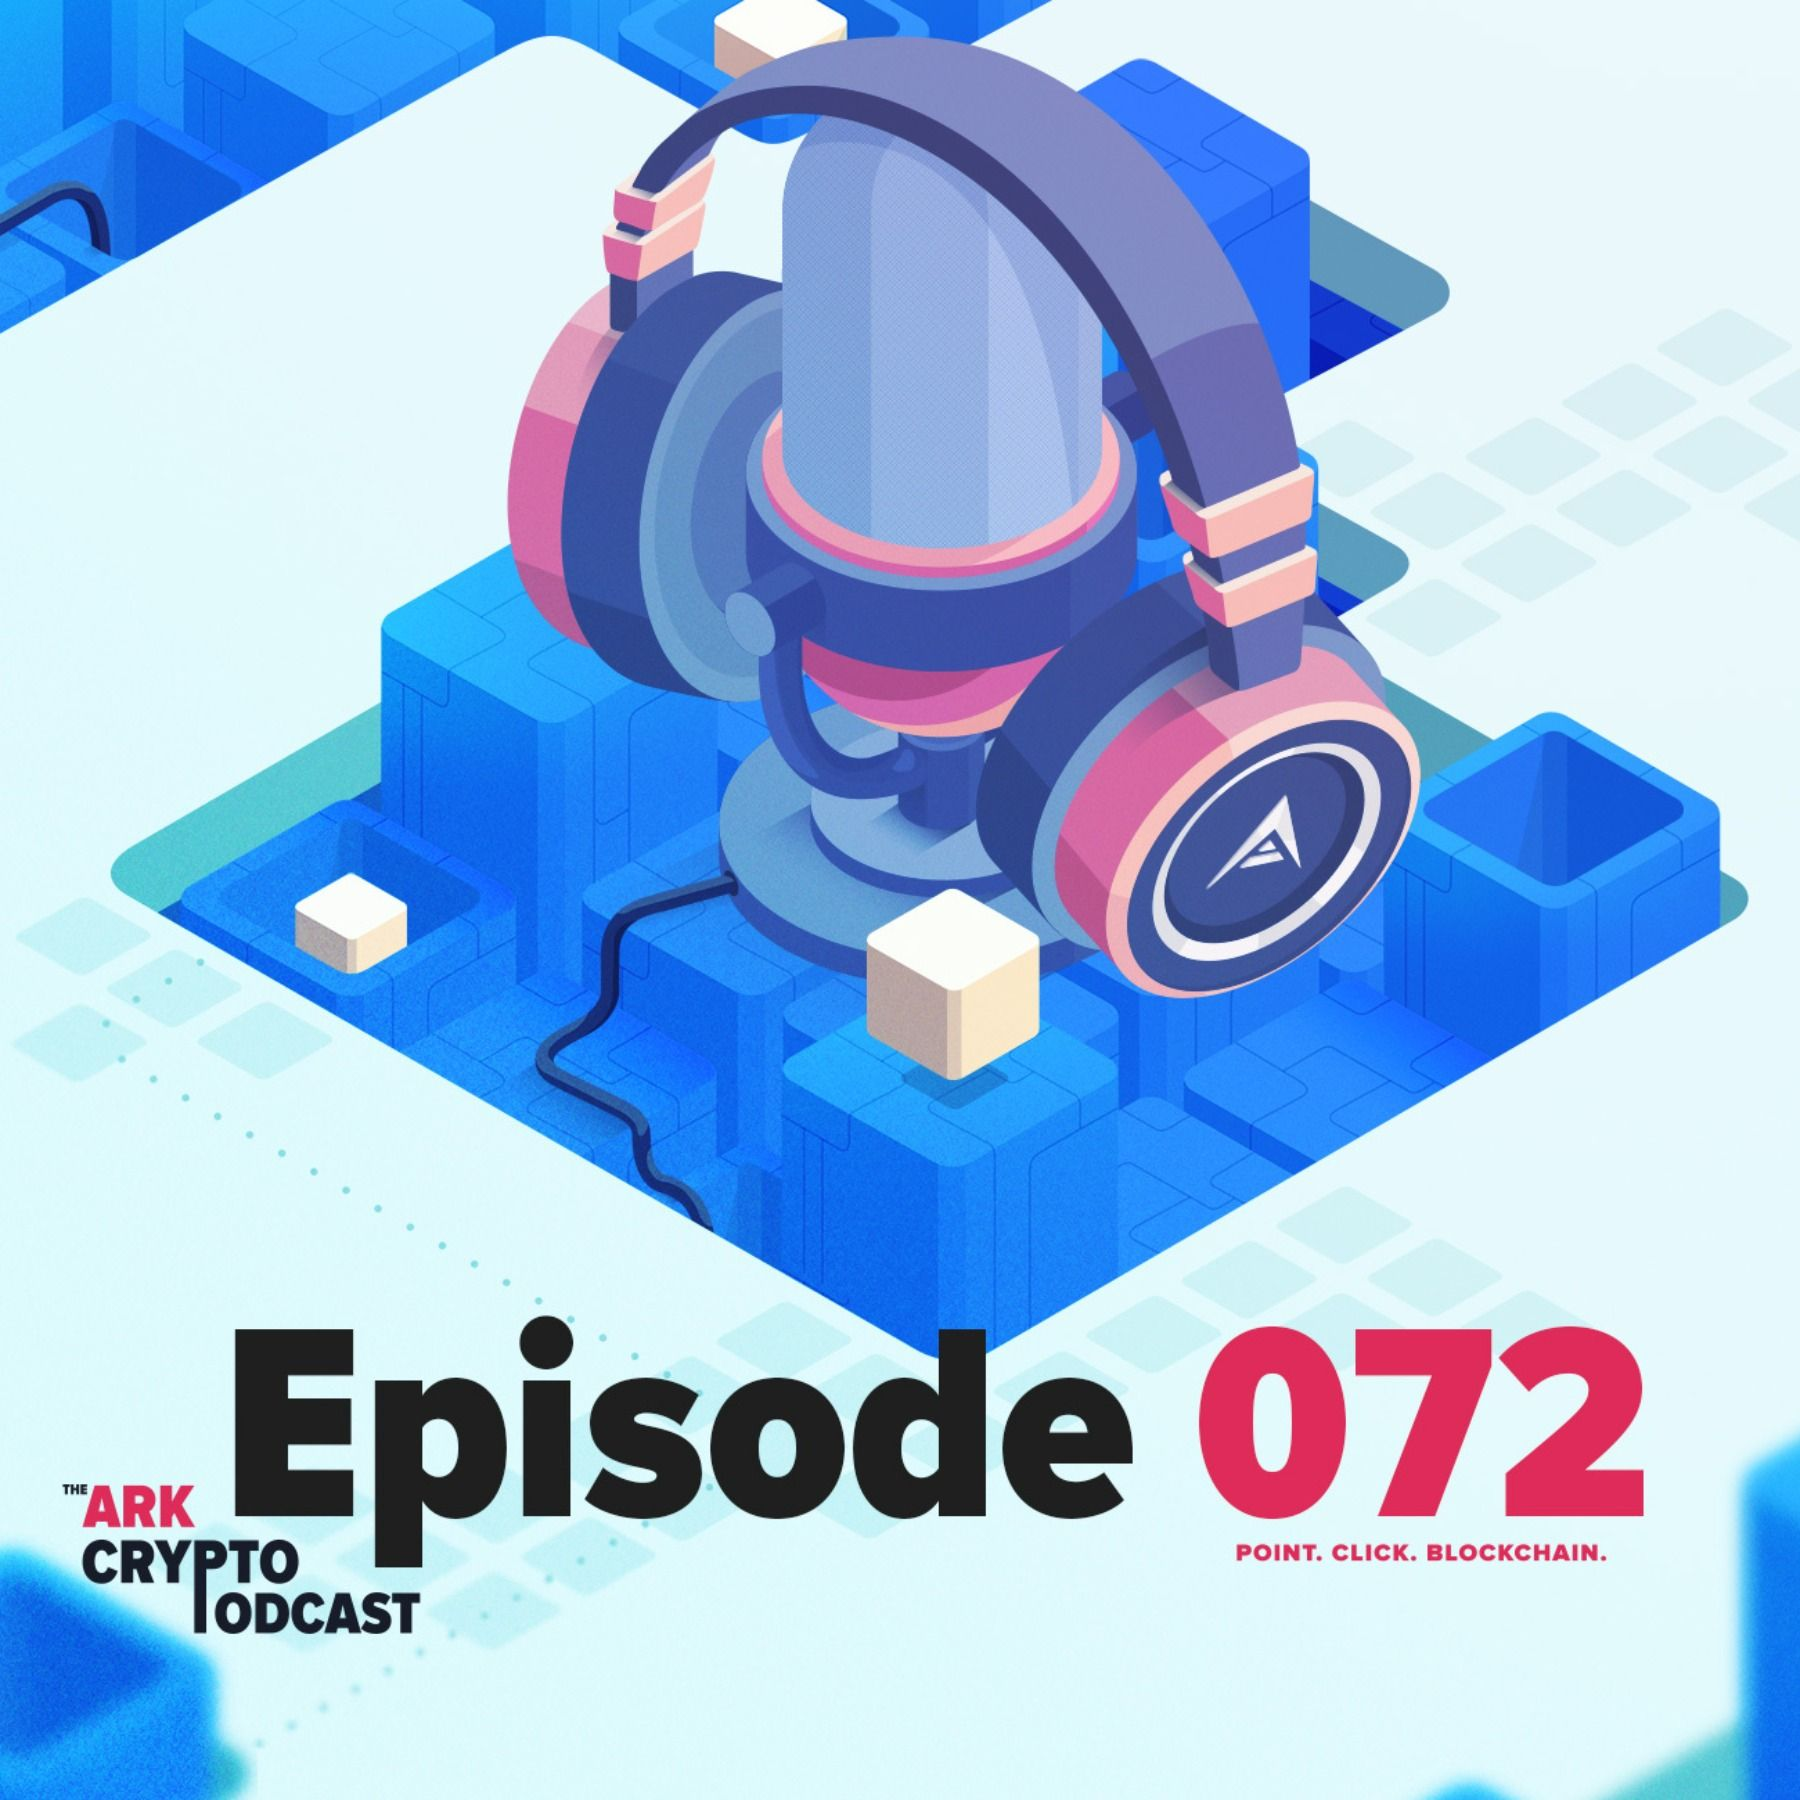 ARK Crypto Podcast #072 - ARK Core Values Deep Dive, Scalability